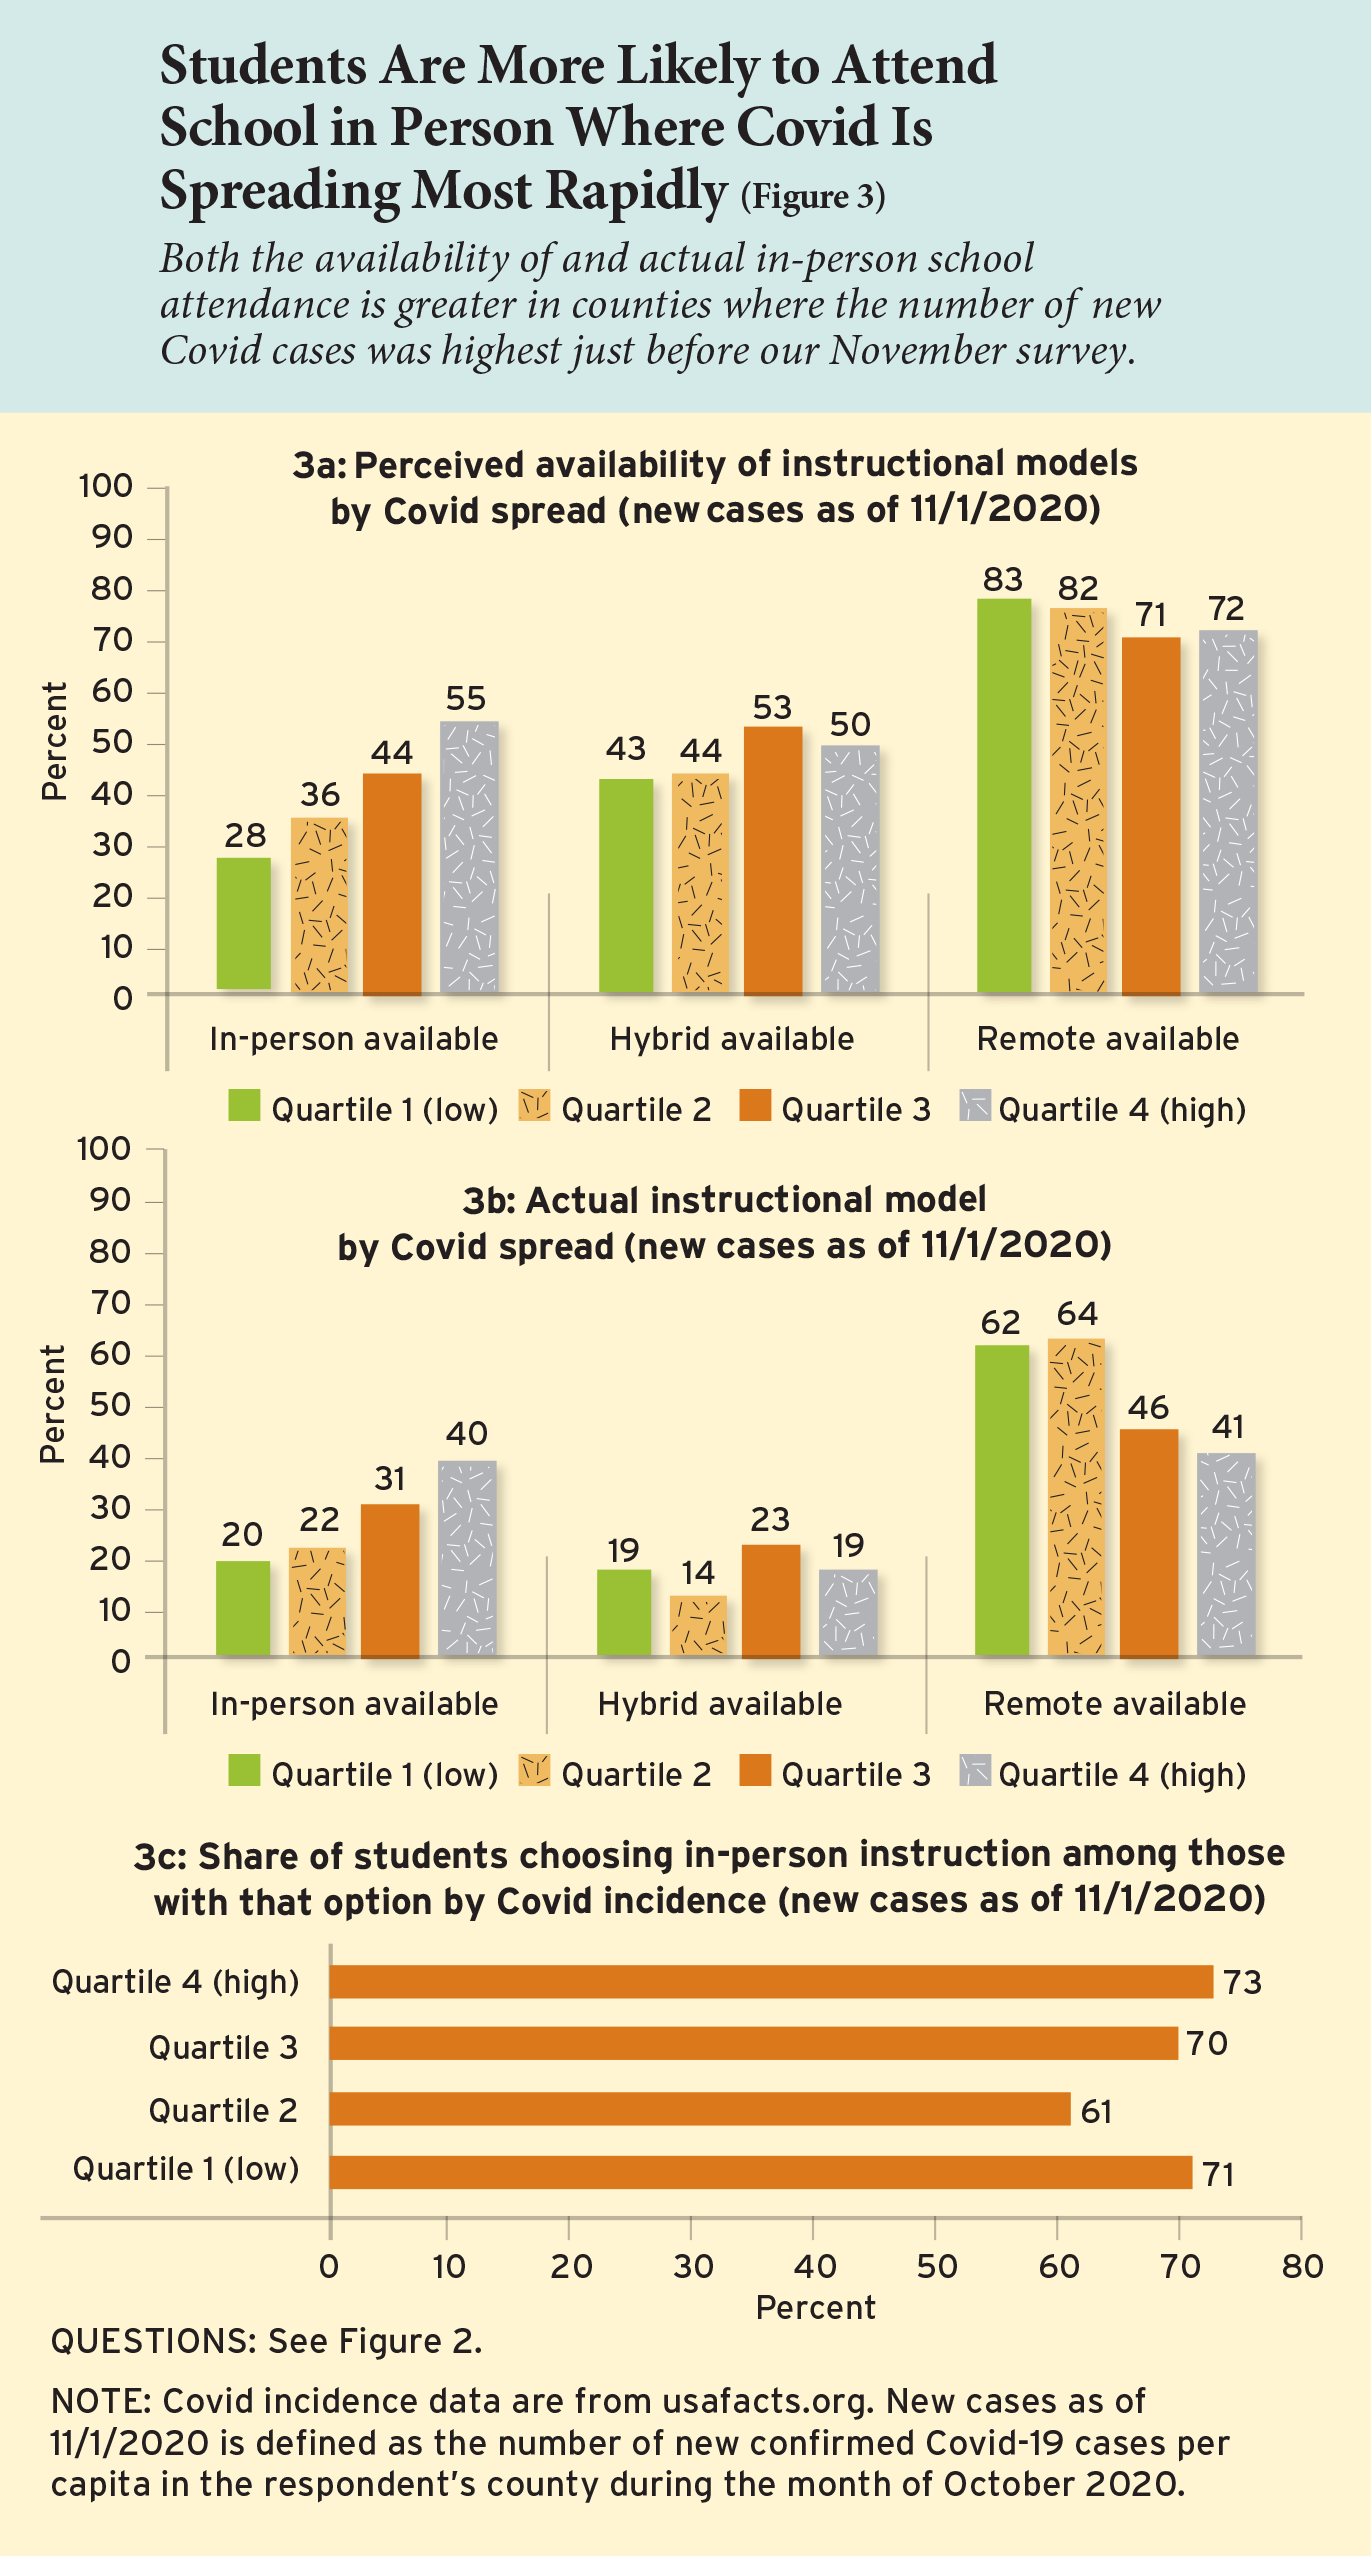 Students Are More Likely to Attend School in Person Where Covid Is Spreading Most Rapidly (Figure 3)